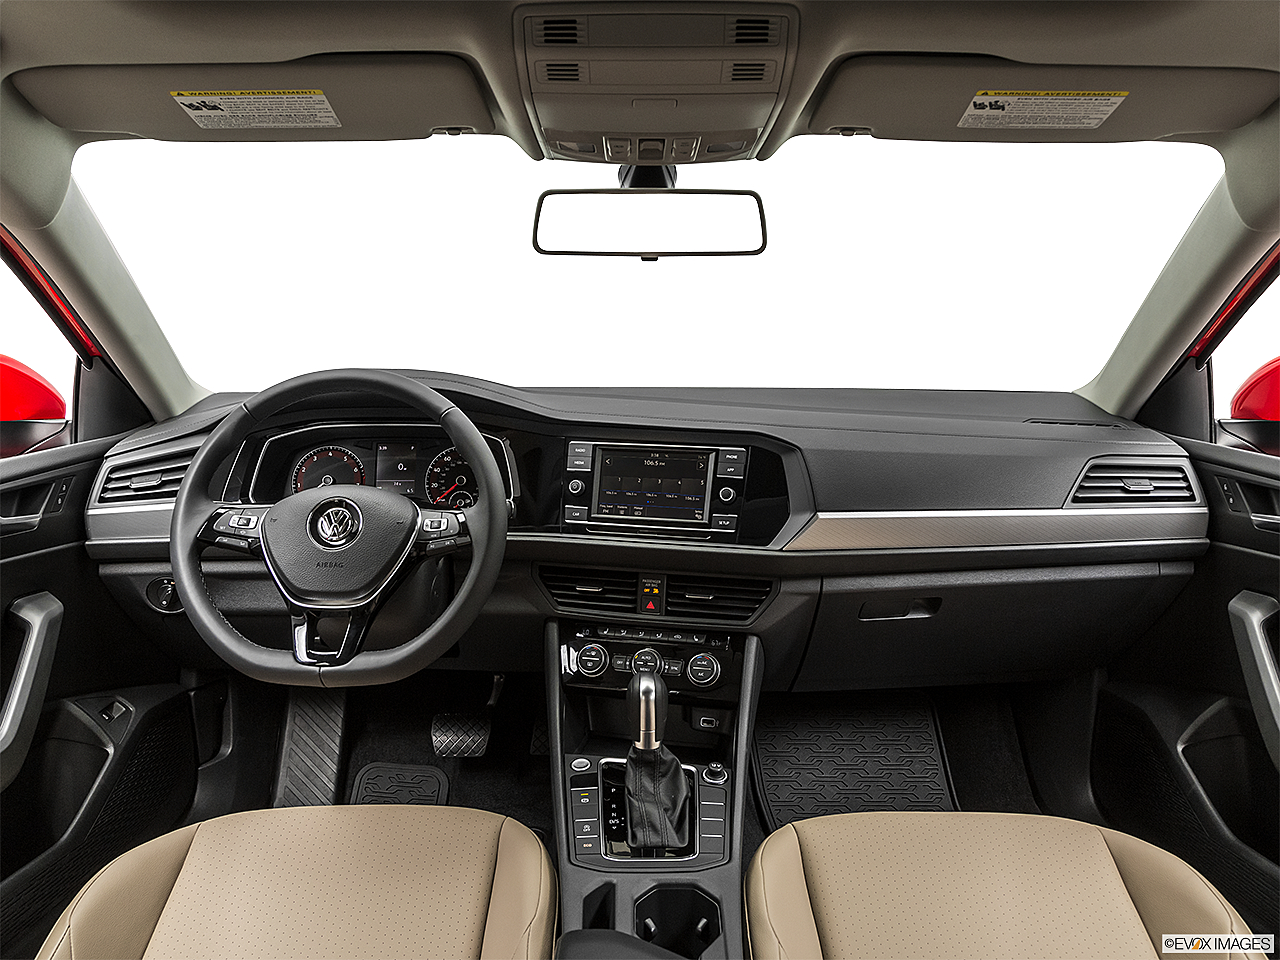 2019 Volkswagen Jetta 1.4T SE, centered wide dash shot